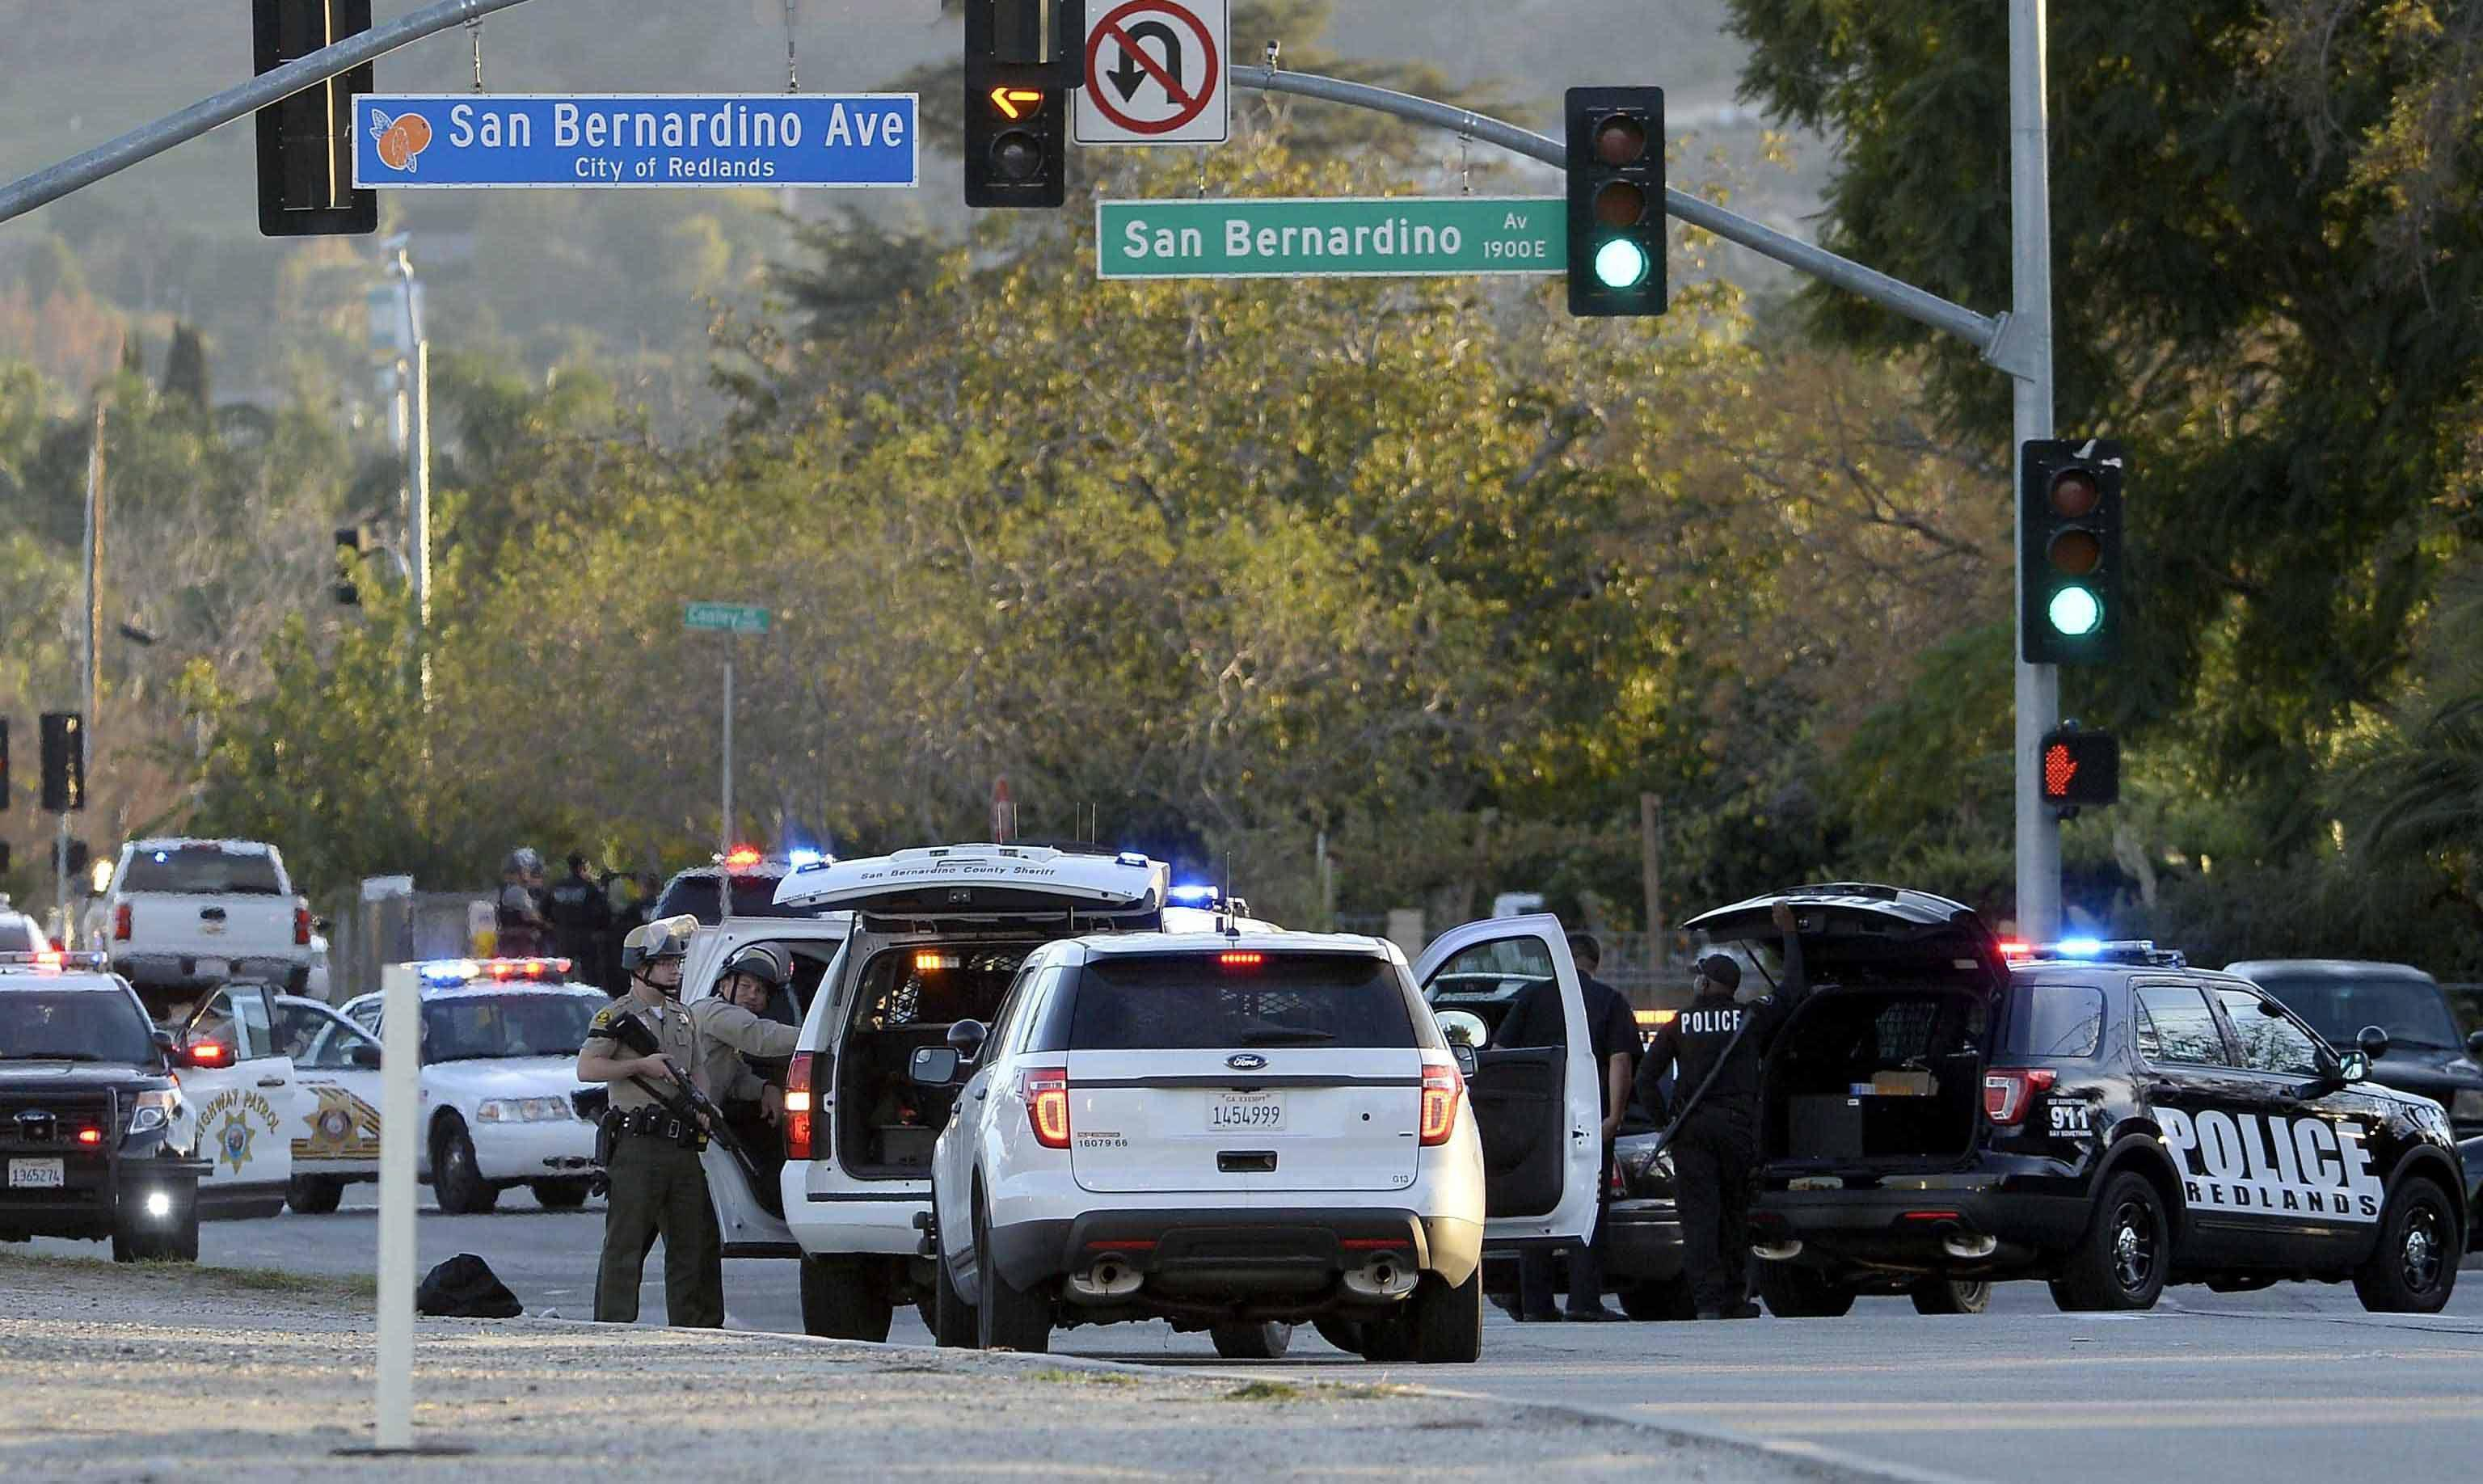 Law enforcement officers deploy near the scene where suspects in the shooting at the Inland Regional Center were reportedly apprehended in San Bernardino